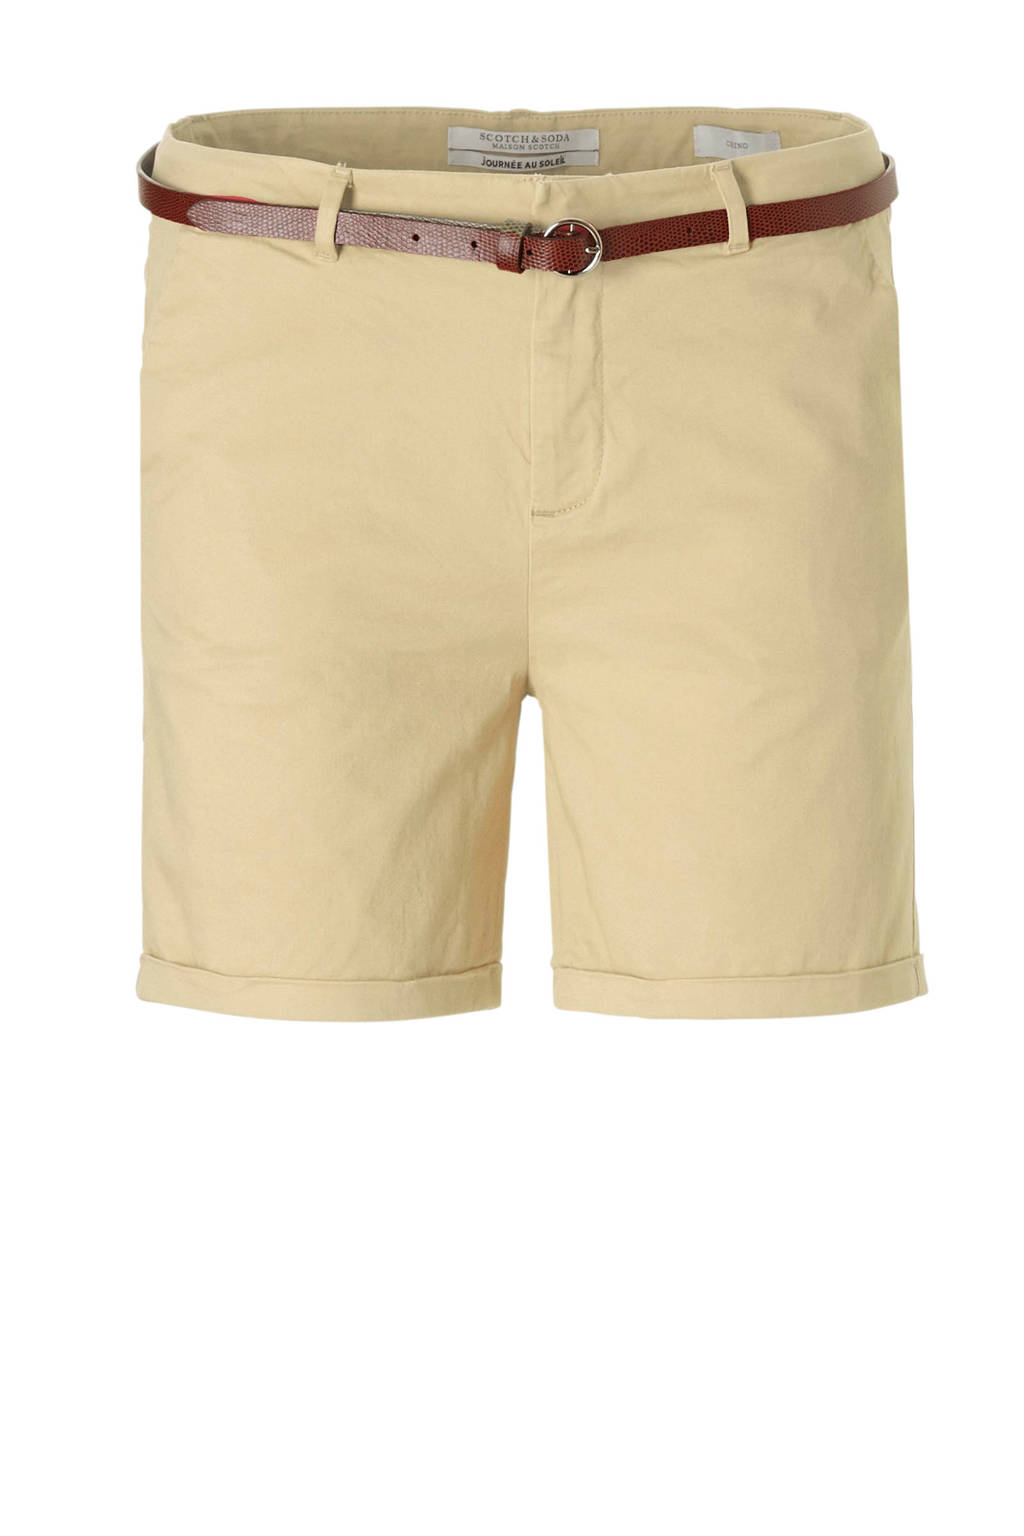 Scotch & Soda chino short met ceintuur, Lichtgeel